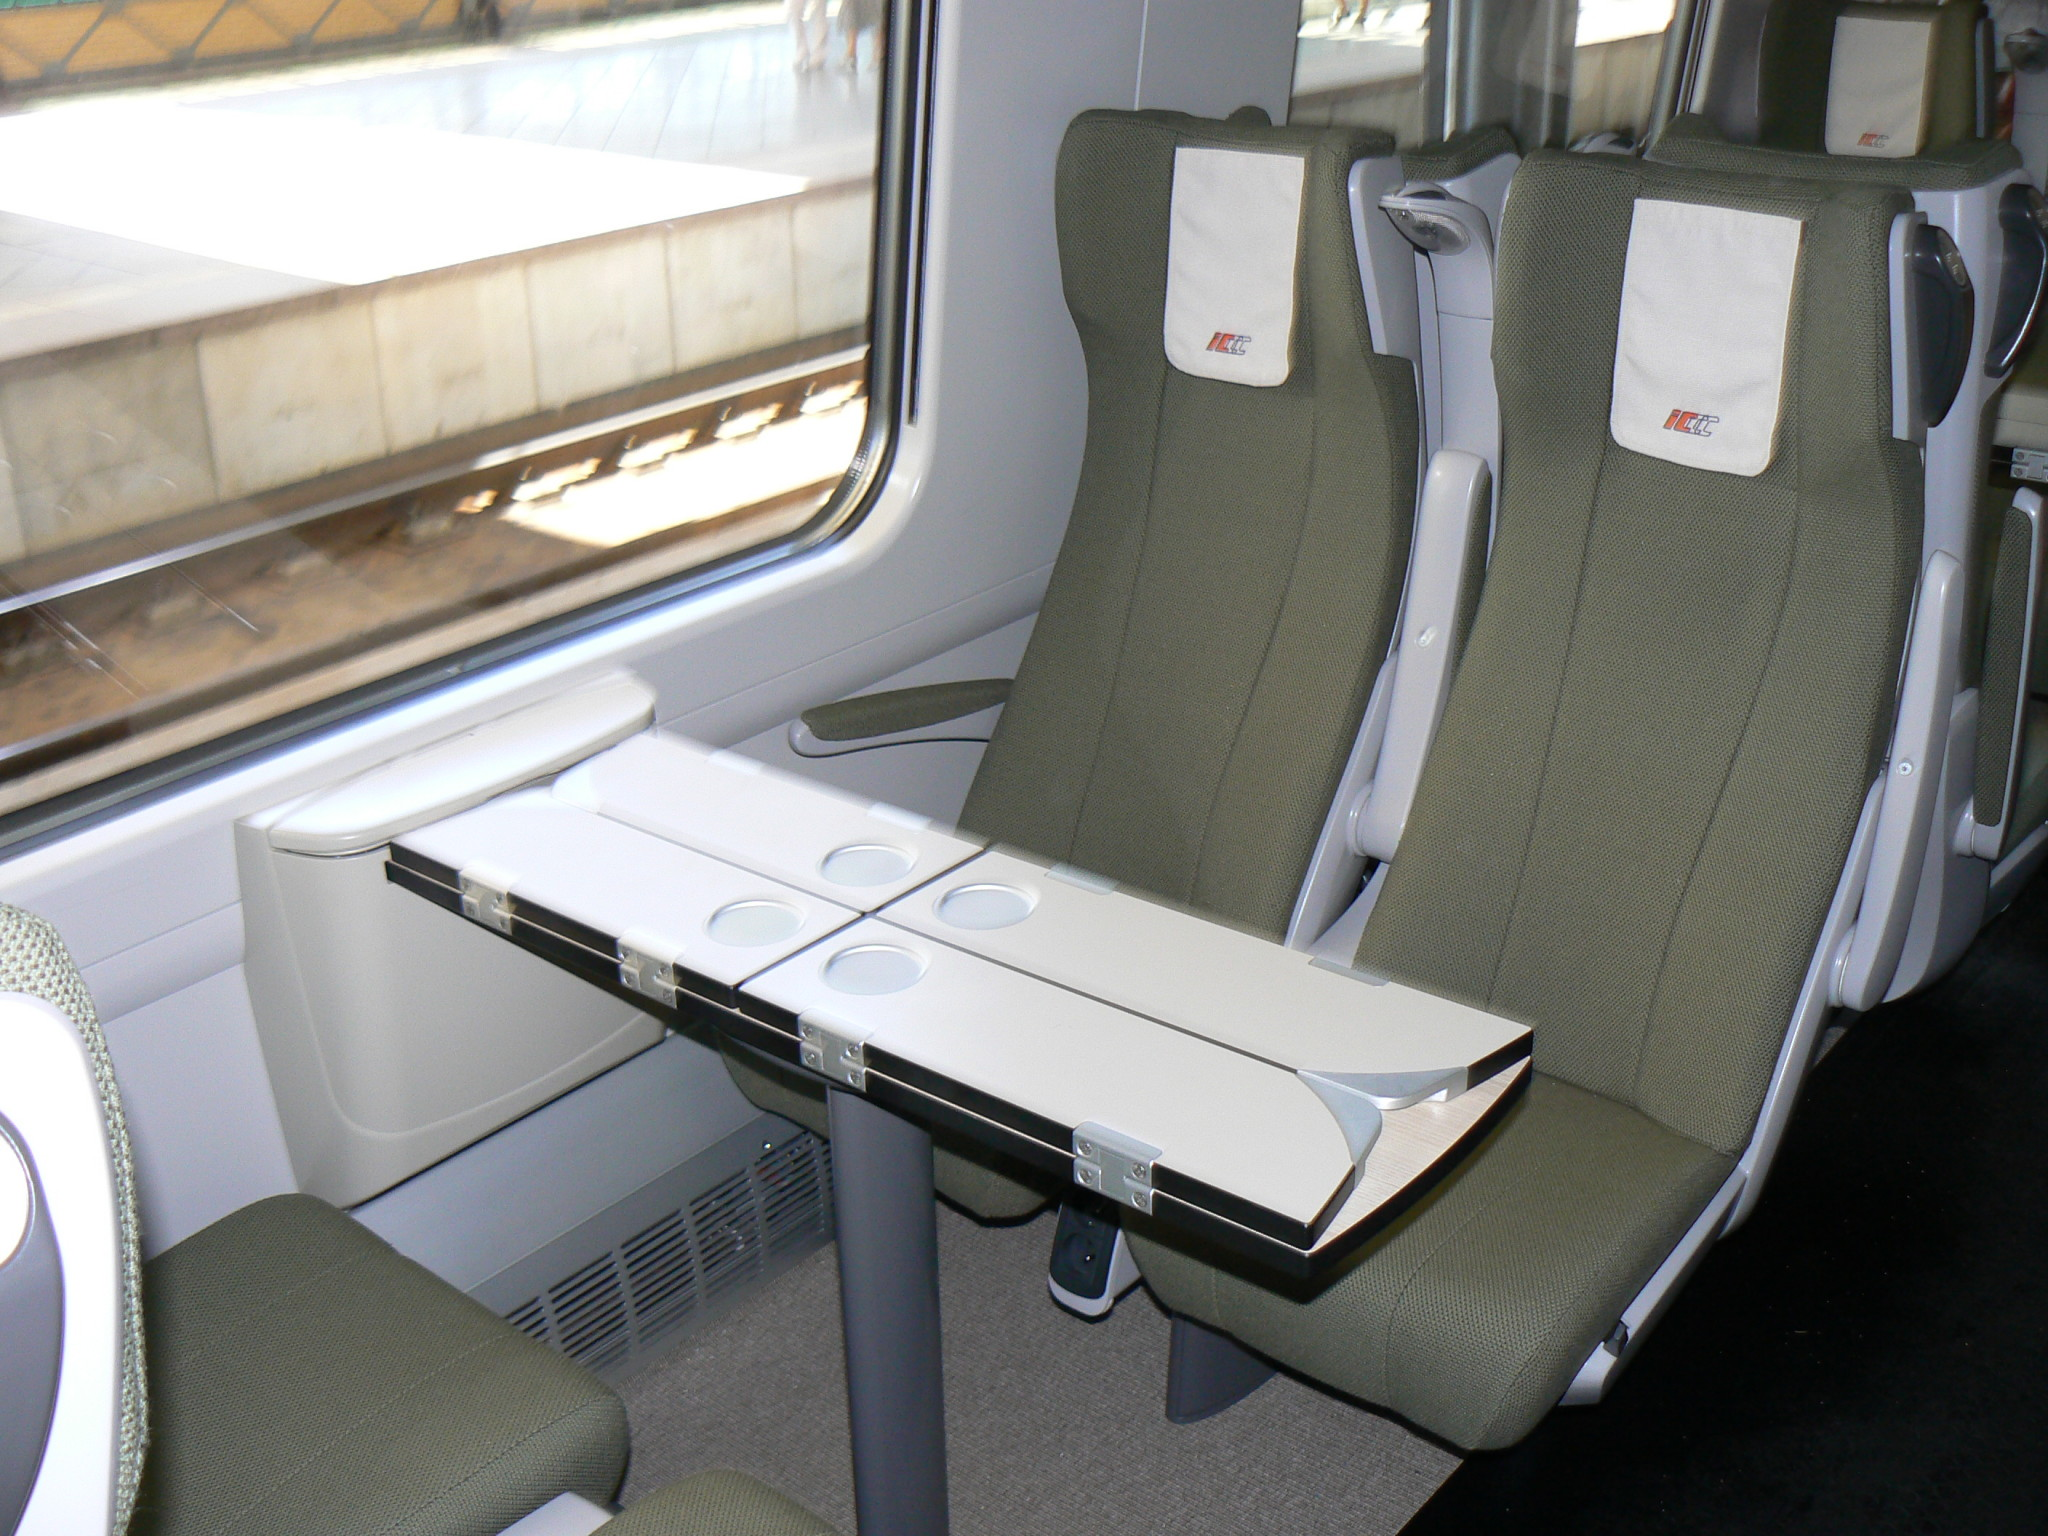 The interiors of many Western European trains are comparable to that of this new Polish Pendolino. (Are those folding tables? And power outlets??)